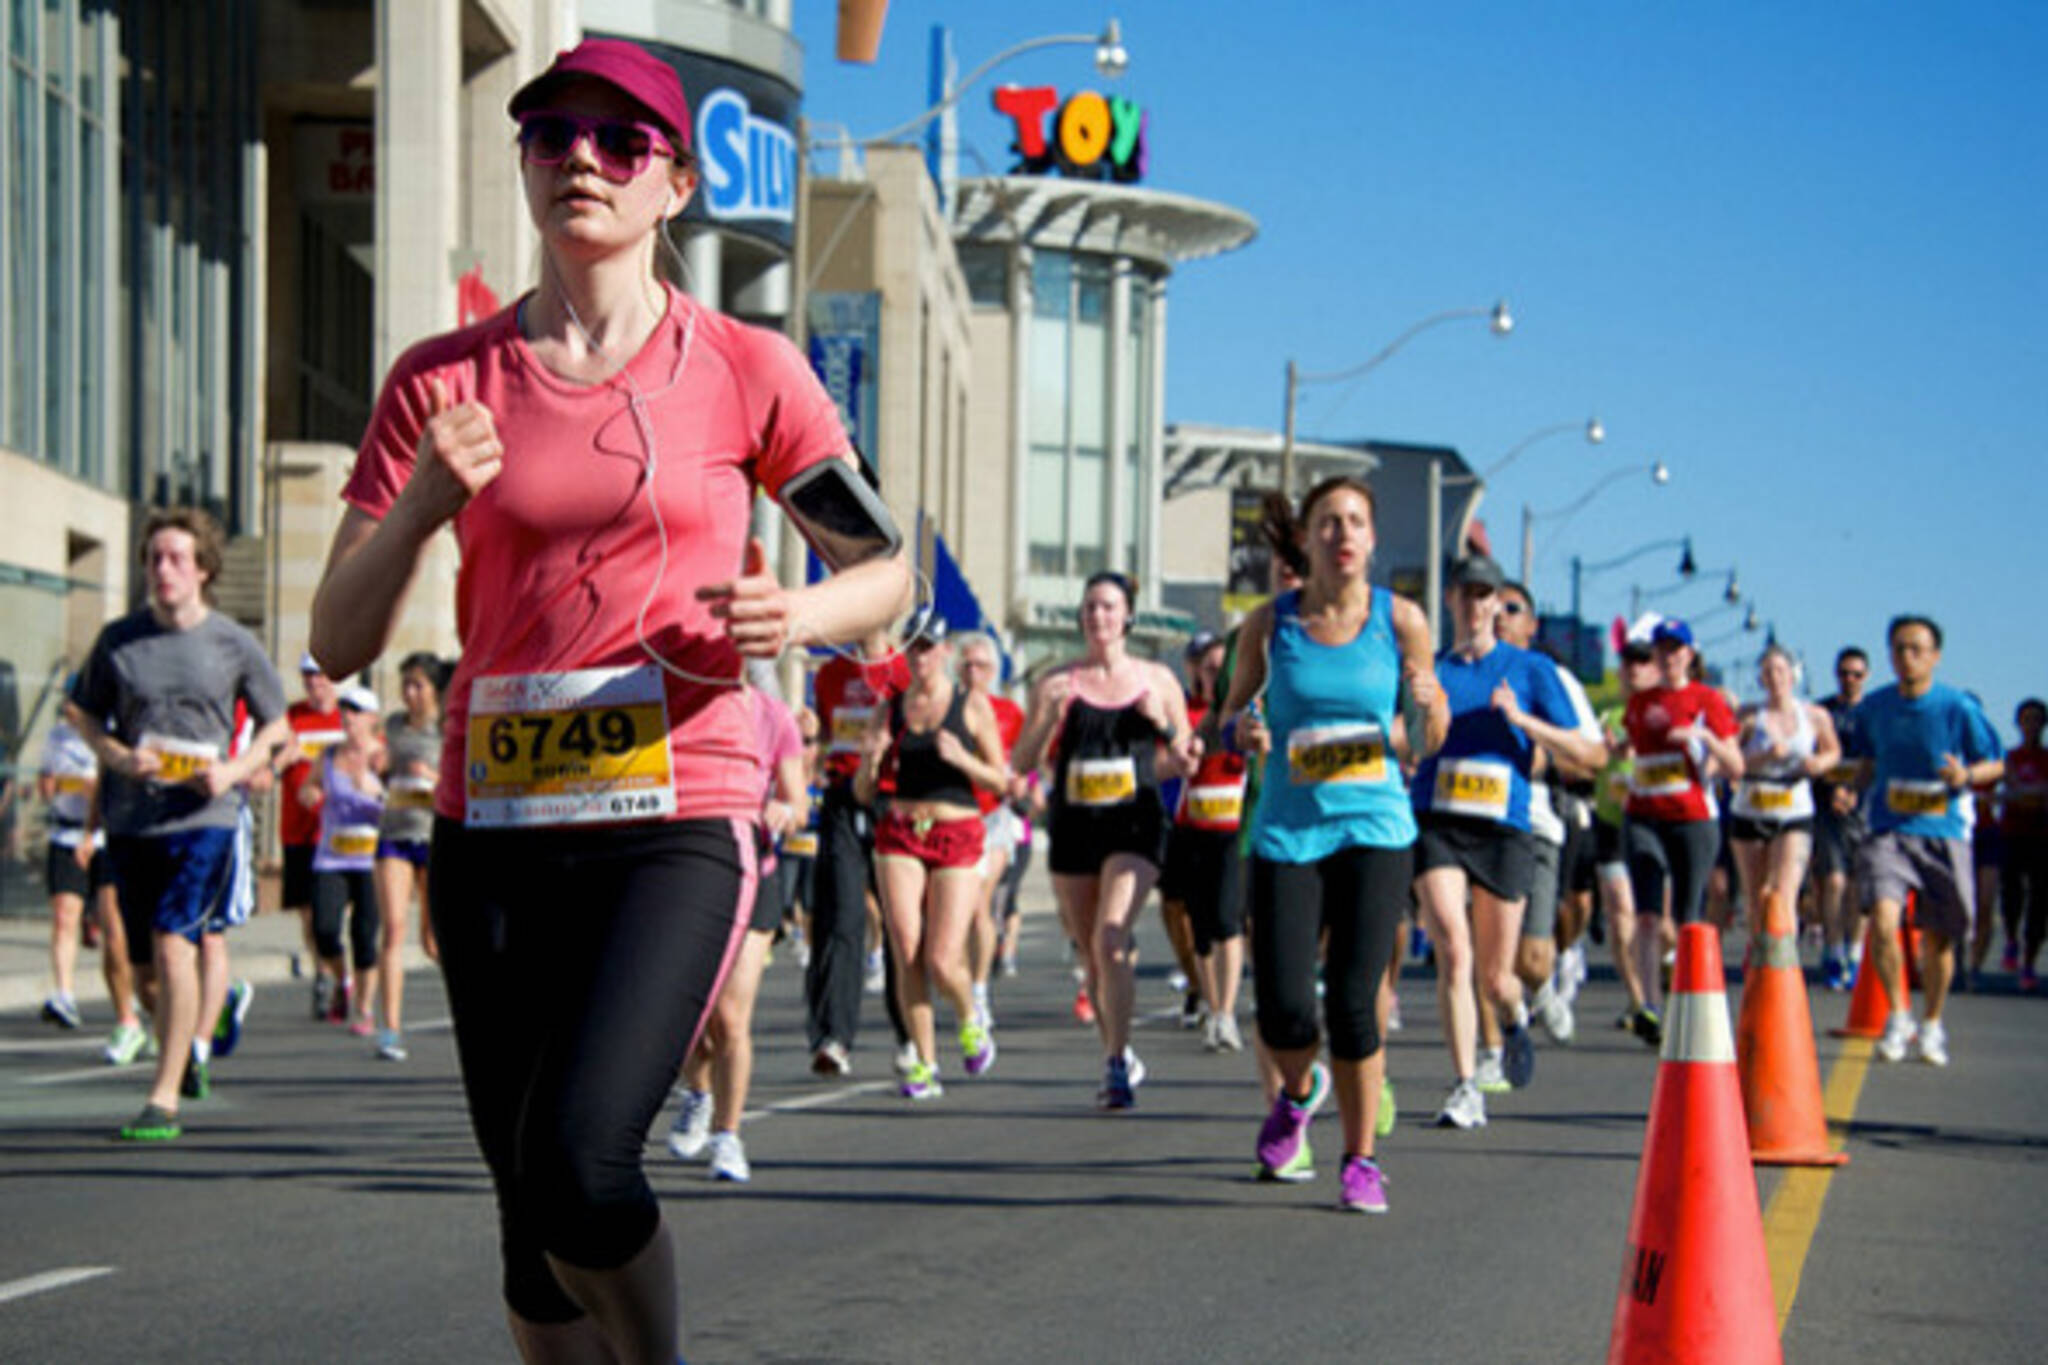 Toronto Goodlife Marathon road closures